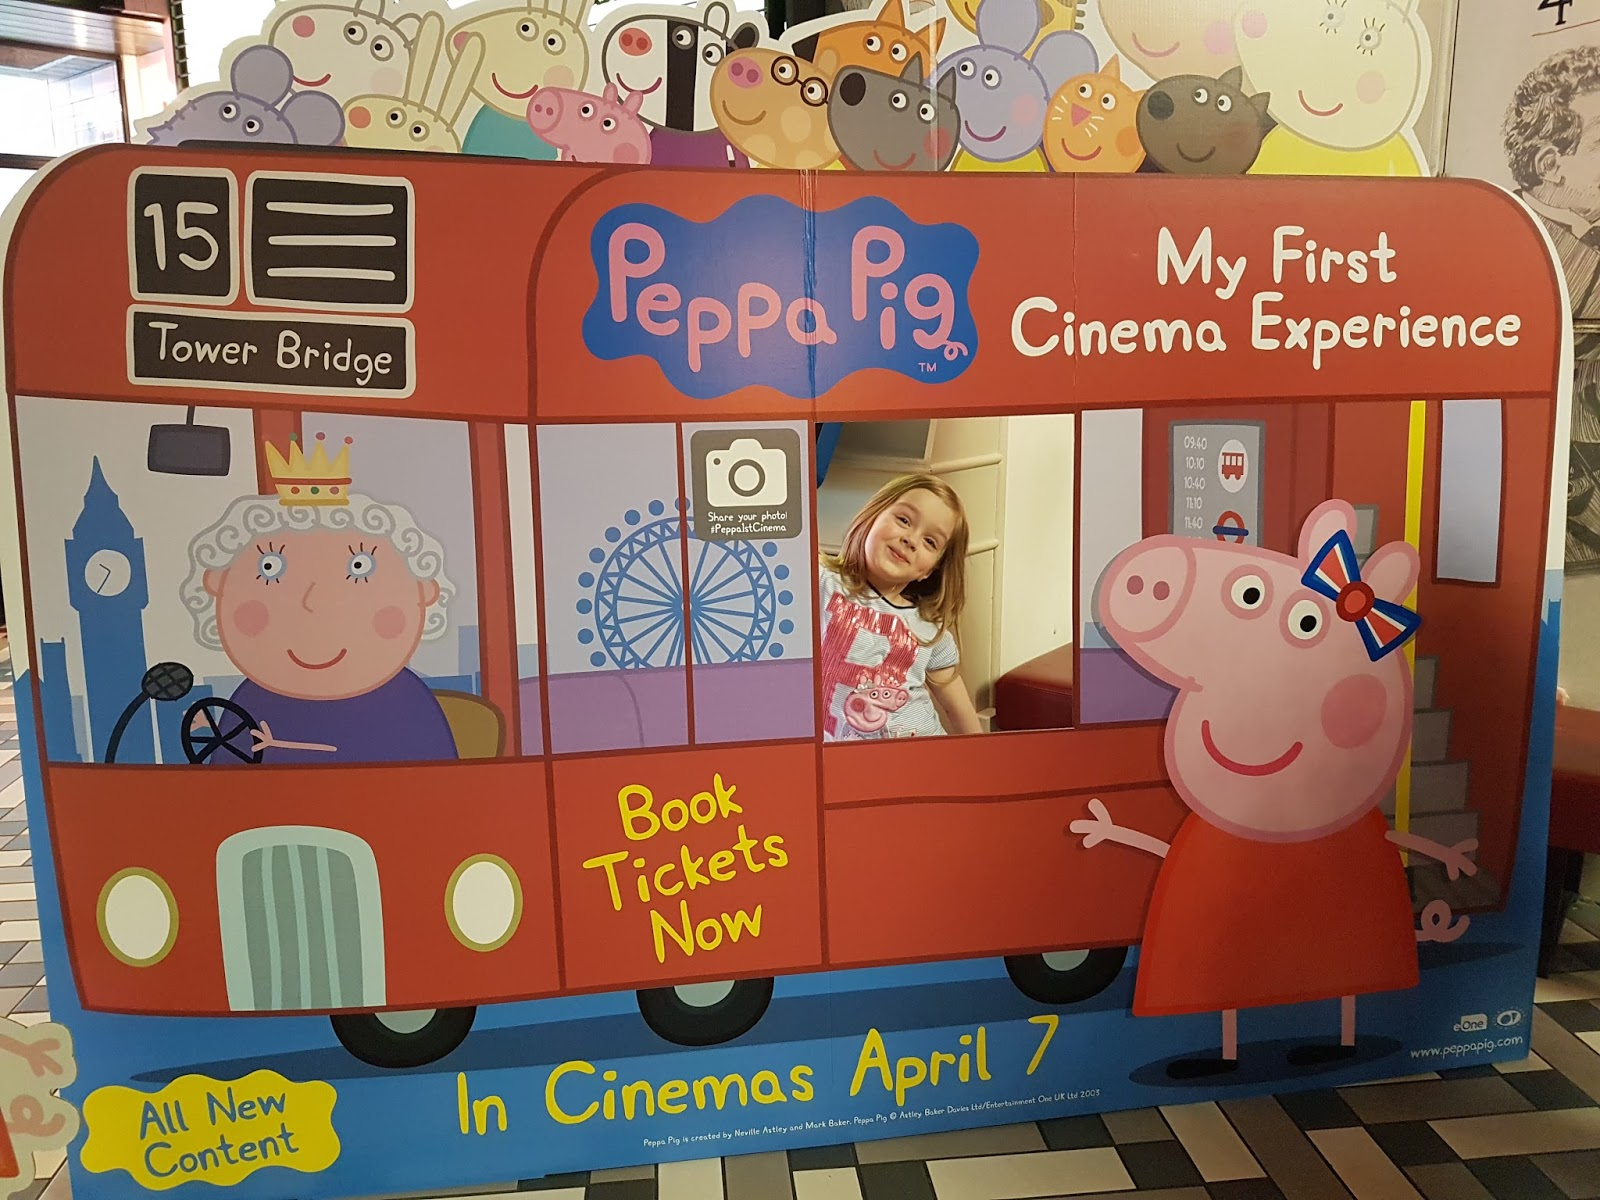 Peppa Pig: My First Cinema Experience review